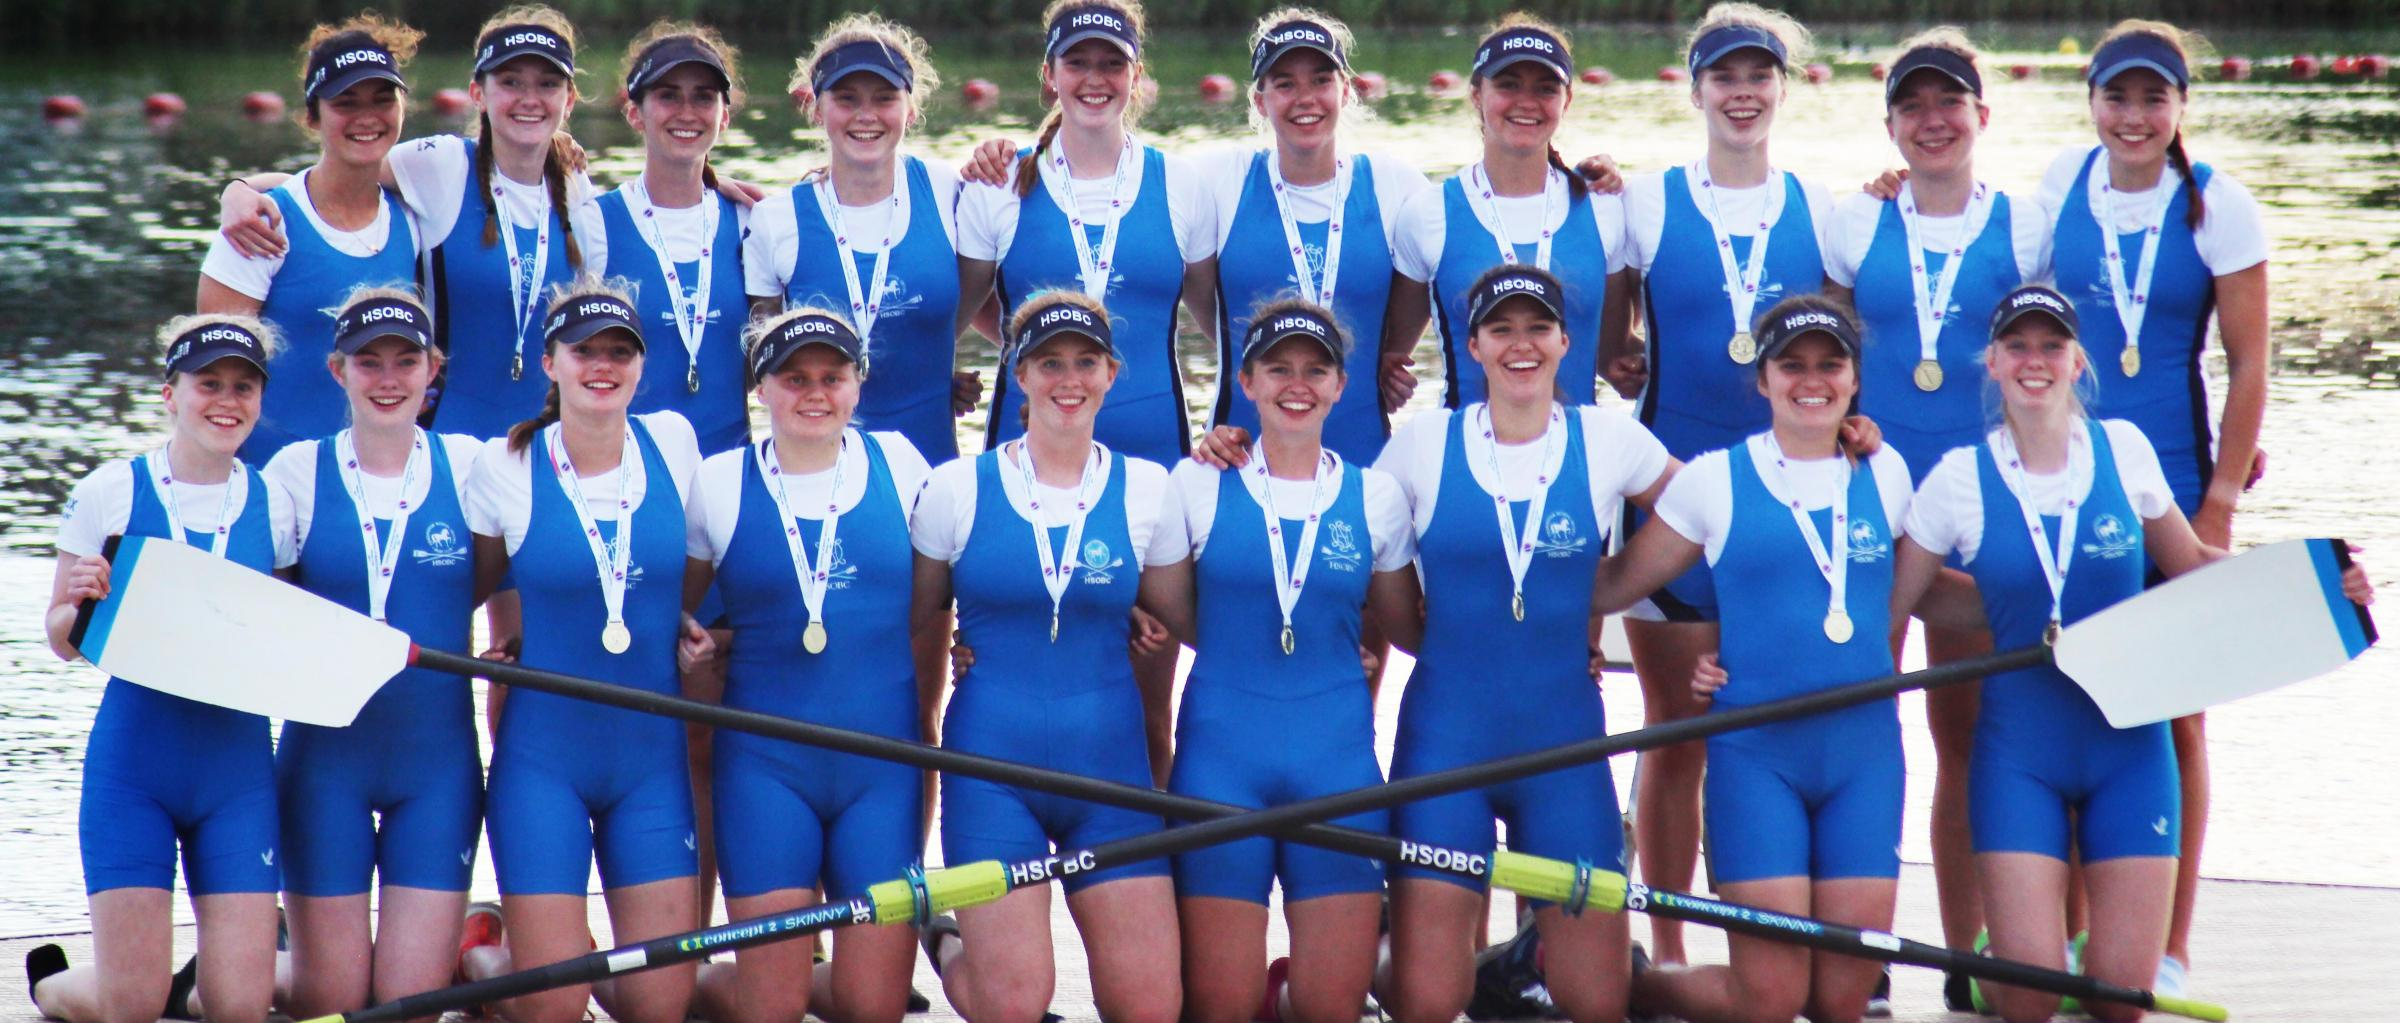 Headington School's champion crews. 1st VIII (back from left): Mattea Wuethrich (single sculler), Annelise Perkins, Danielle Semple, Frances Curtis, Isabel Rundle, India Mattocks, Lucy Pullinger, Rosanna Little, Elizabeth Haskins, Katie King-Smith. 2nd